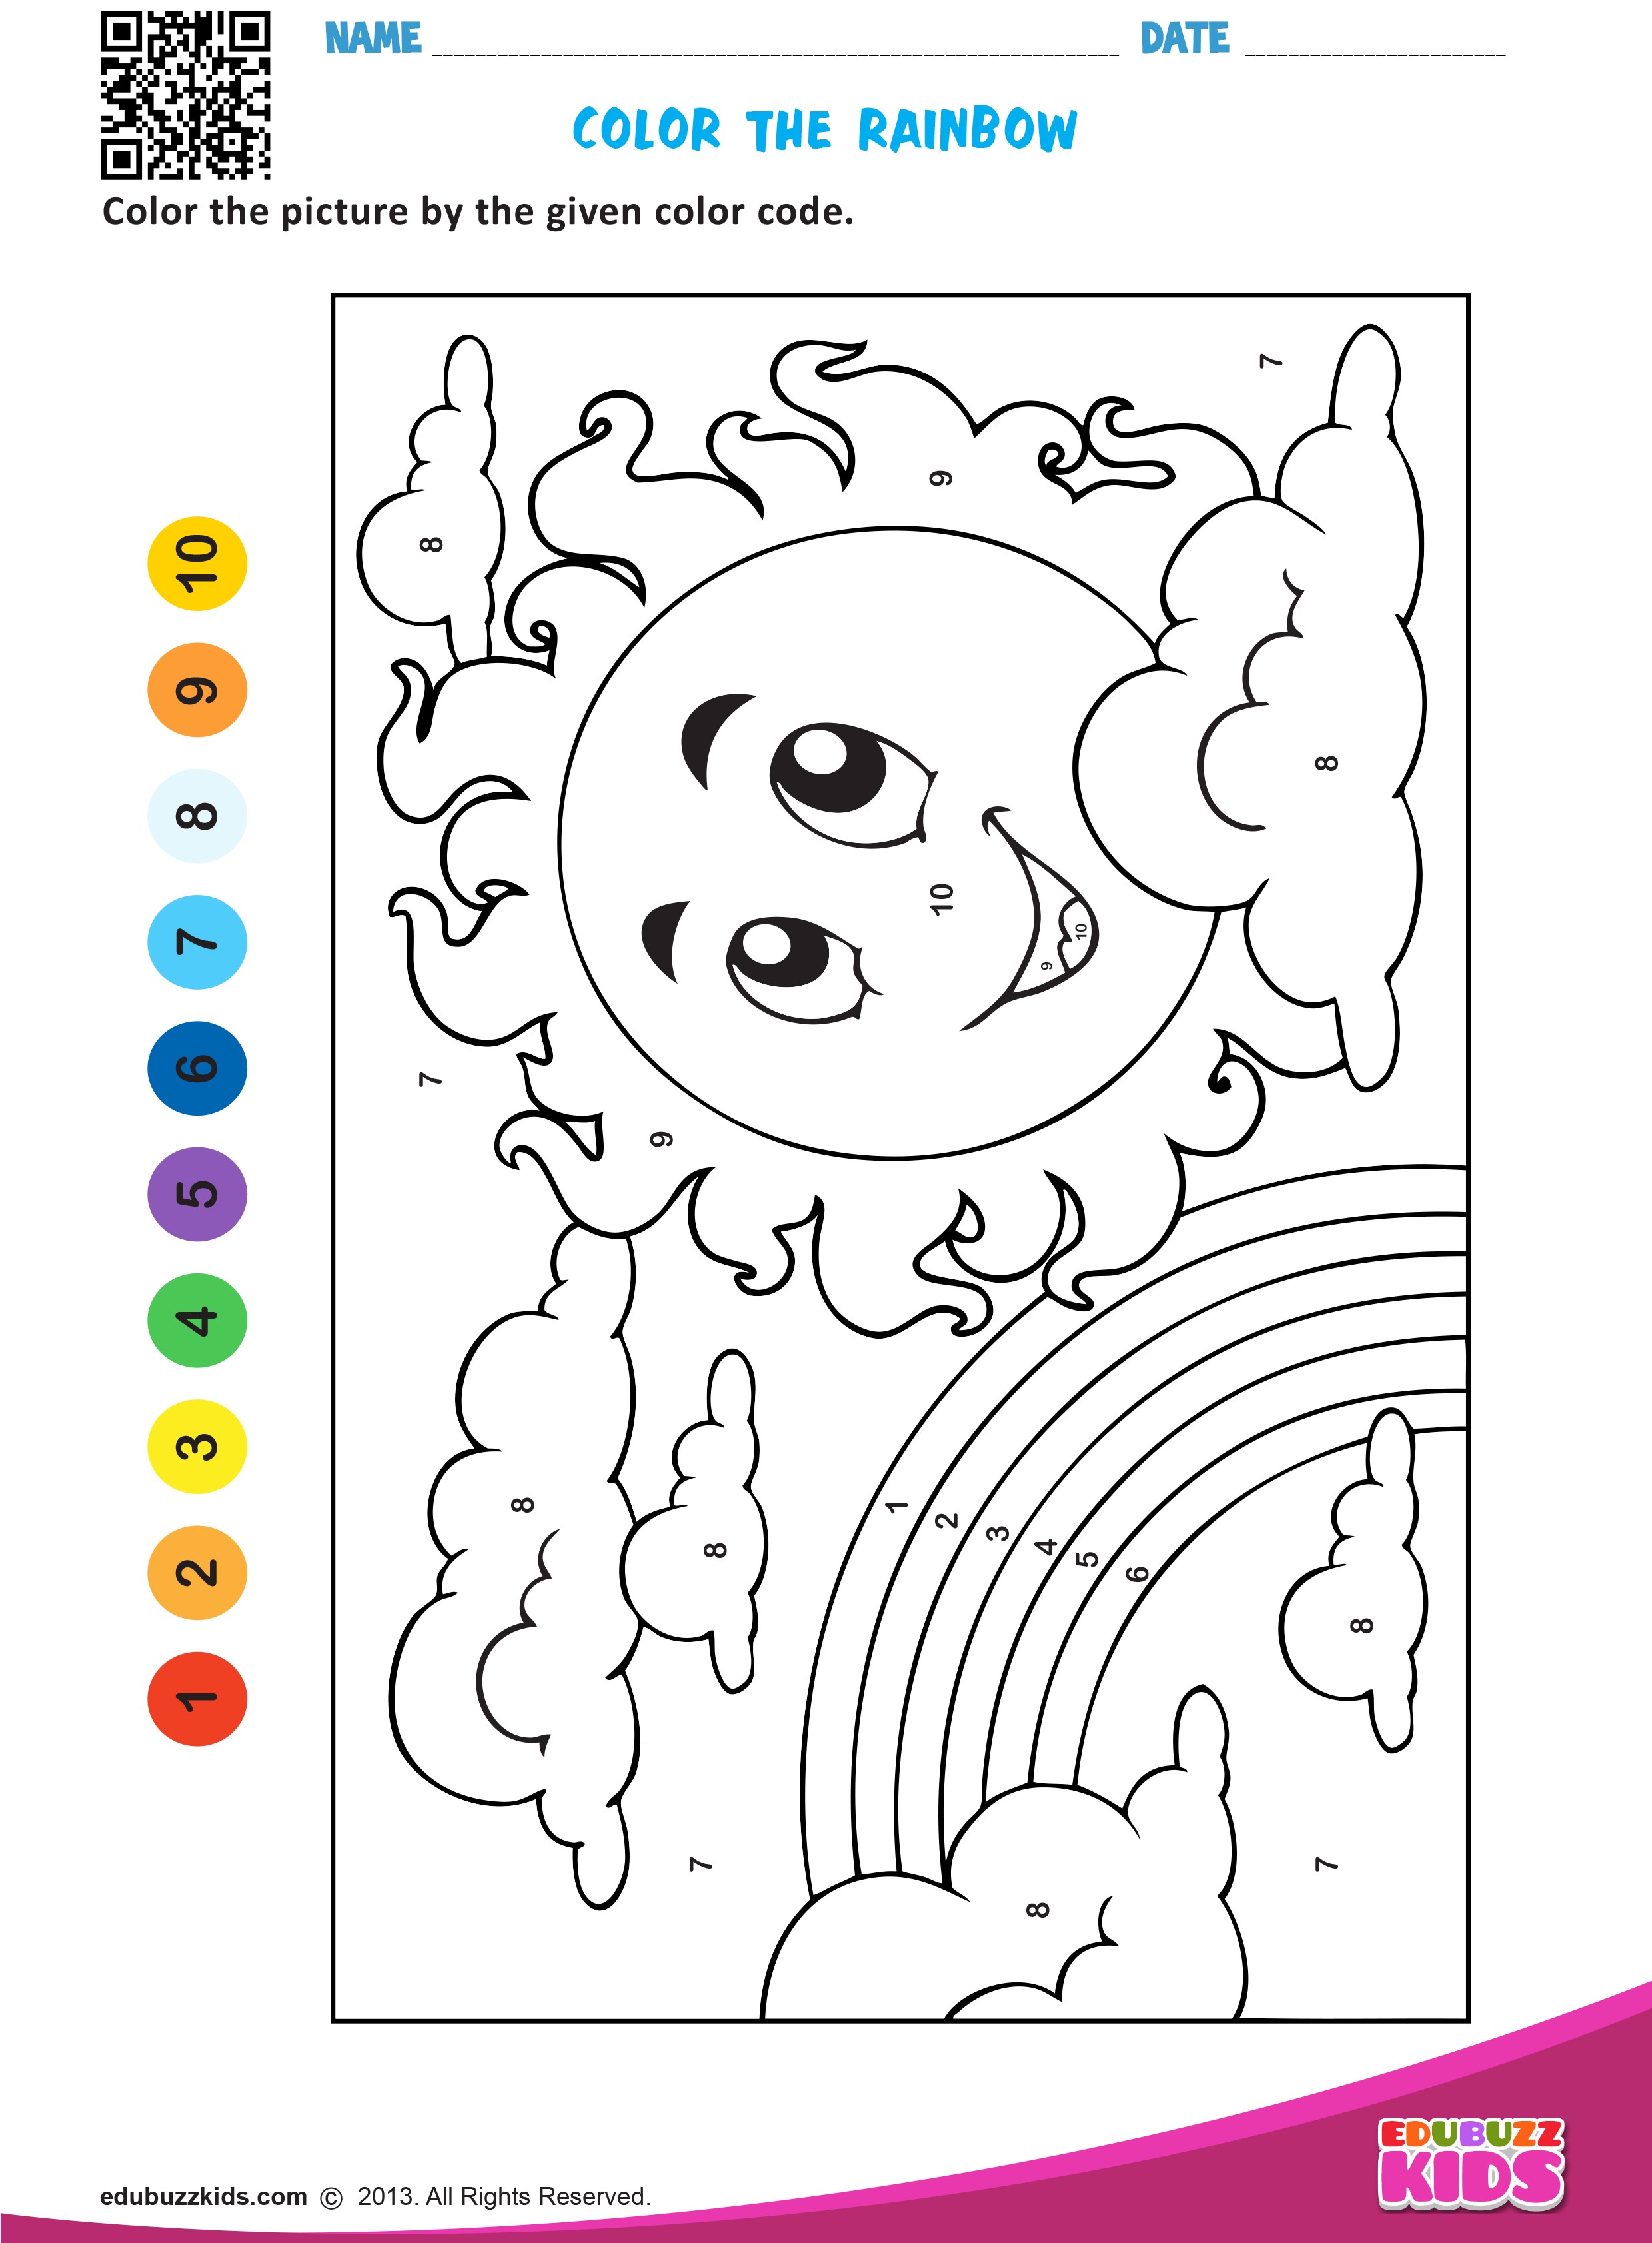 Printable maths color by number worksheets for preschool